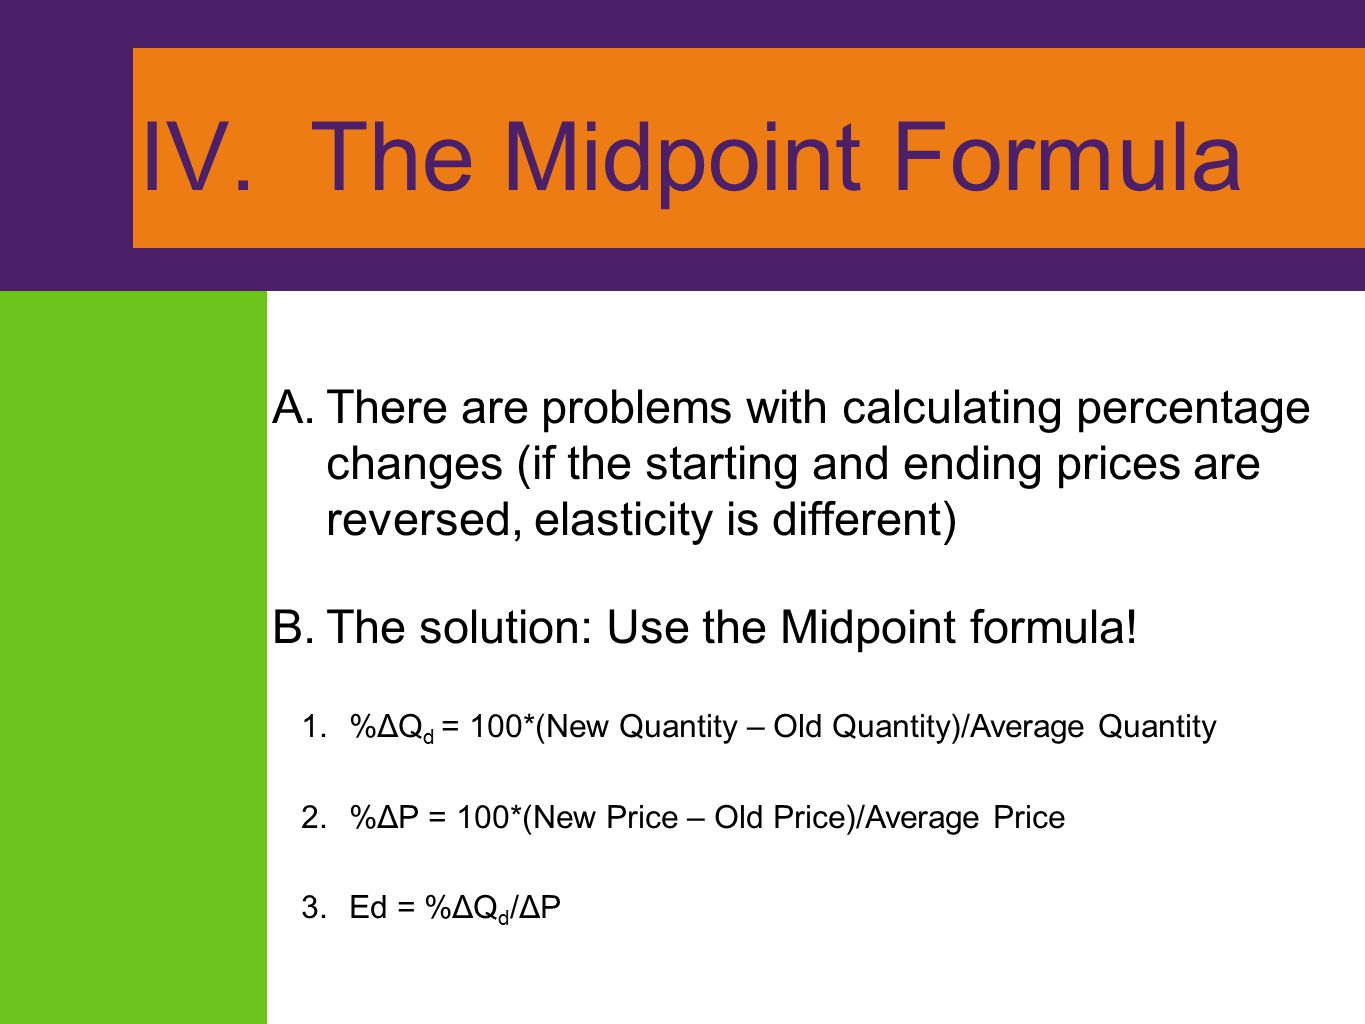 IV. The Midpoint Formula